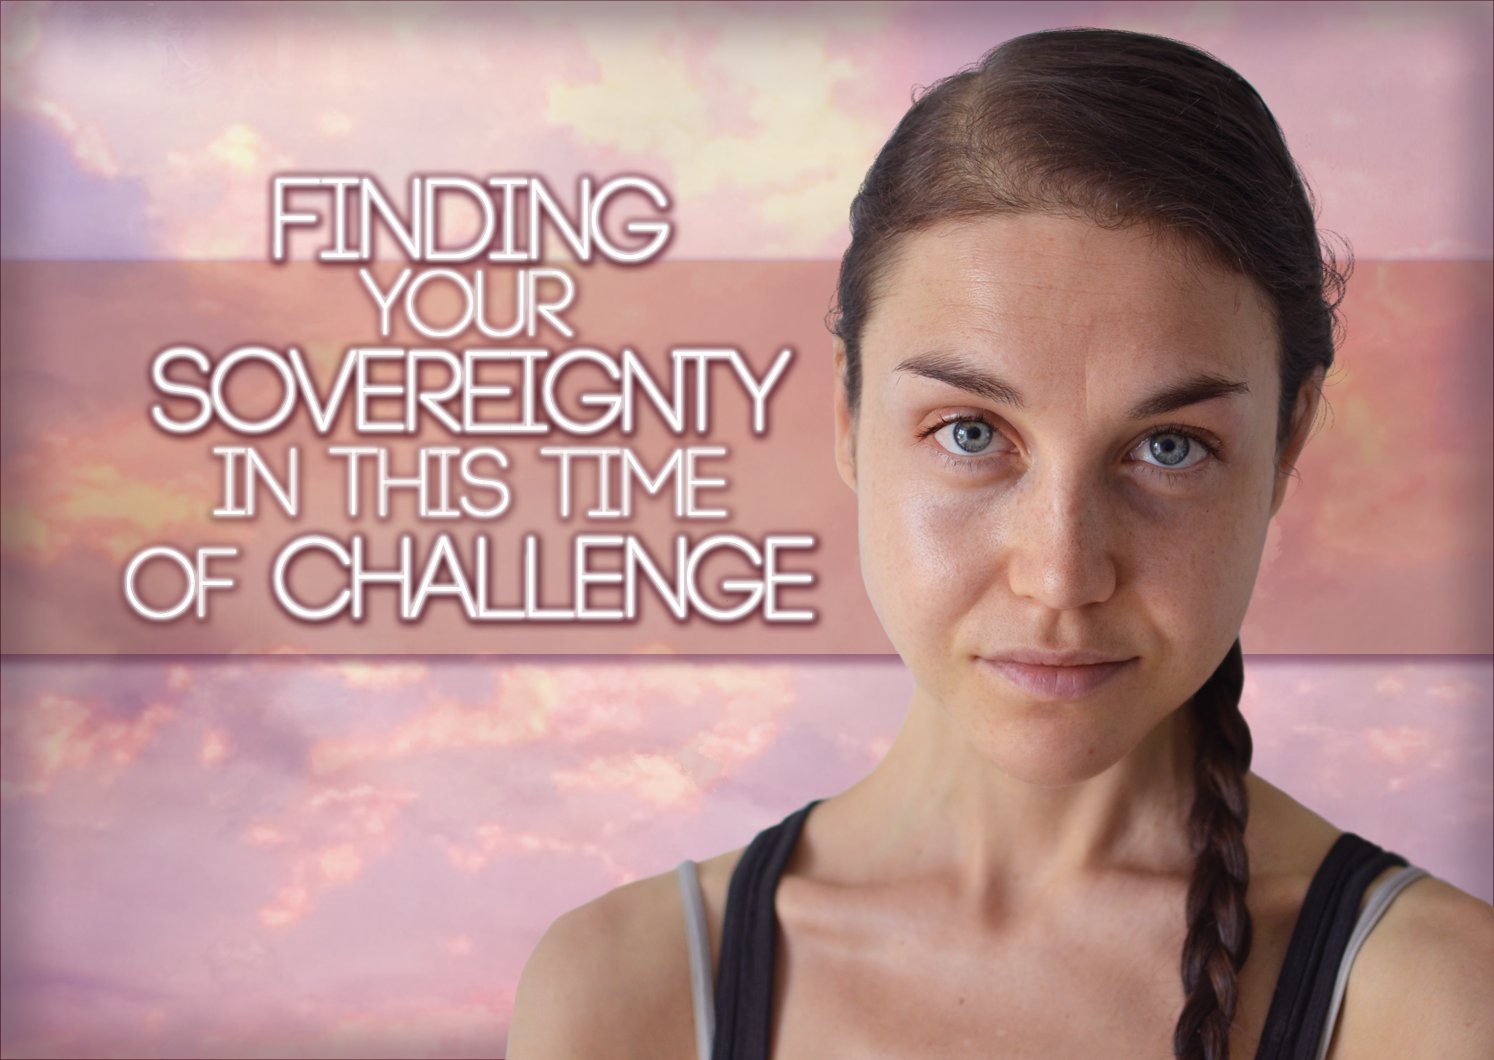 Finding Your Sovereignty In This Time Of Challenge